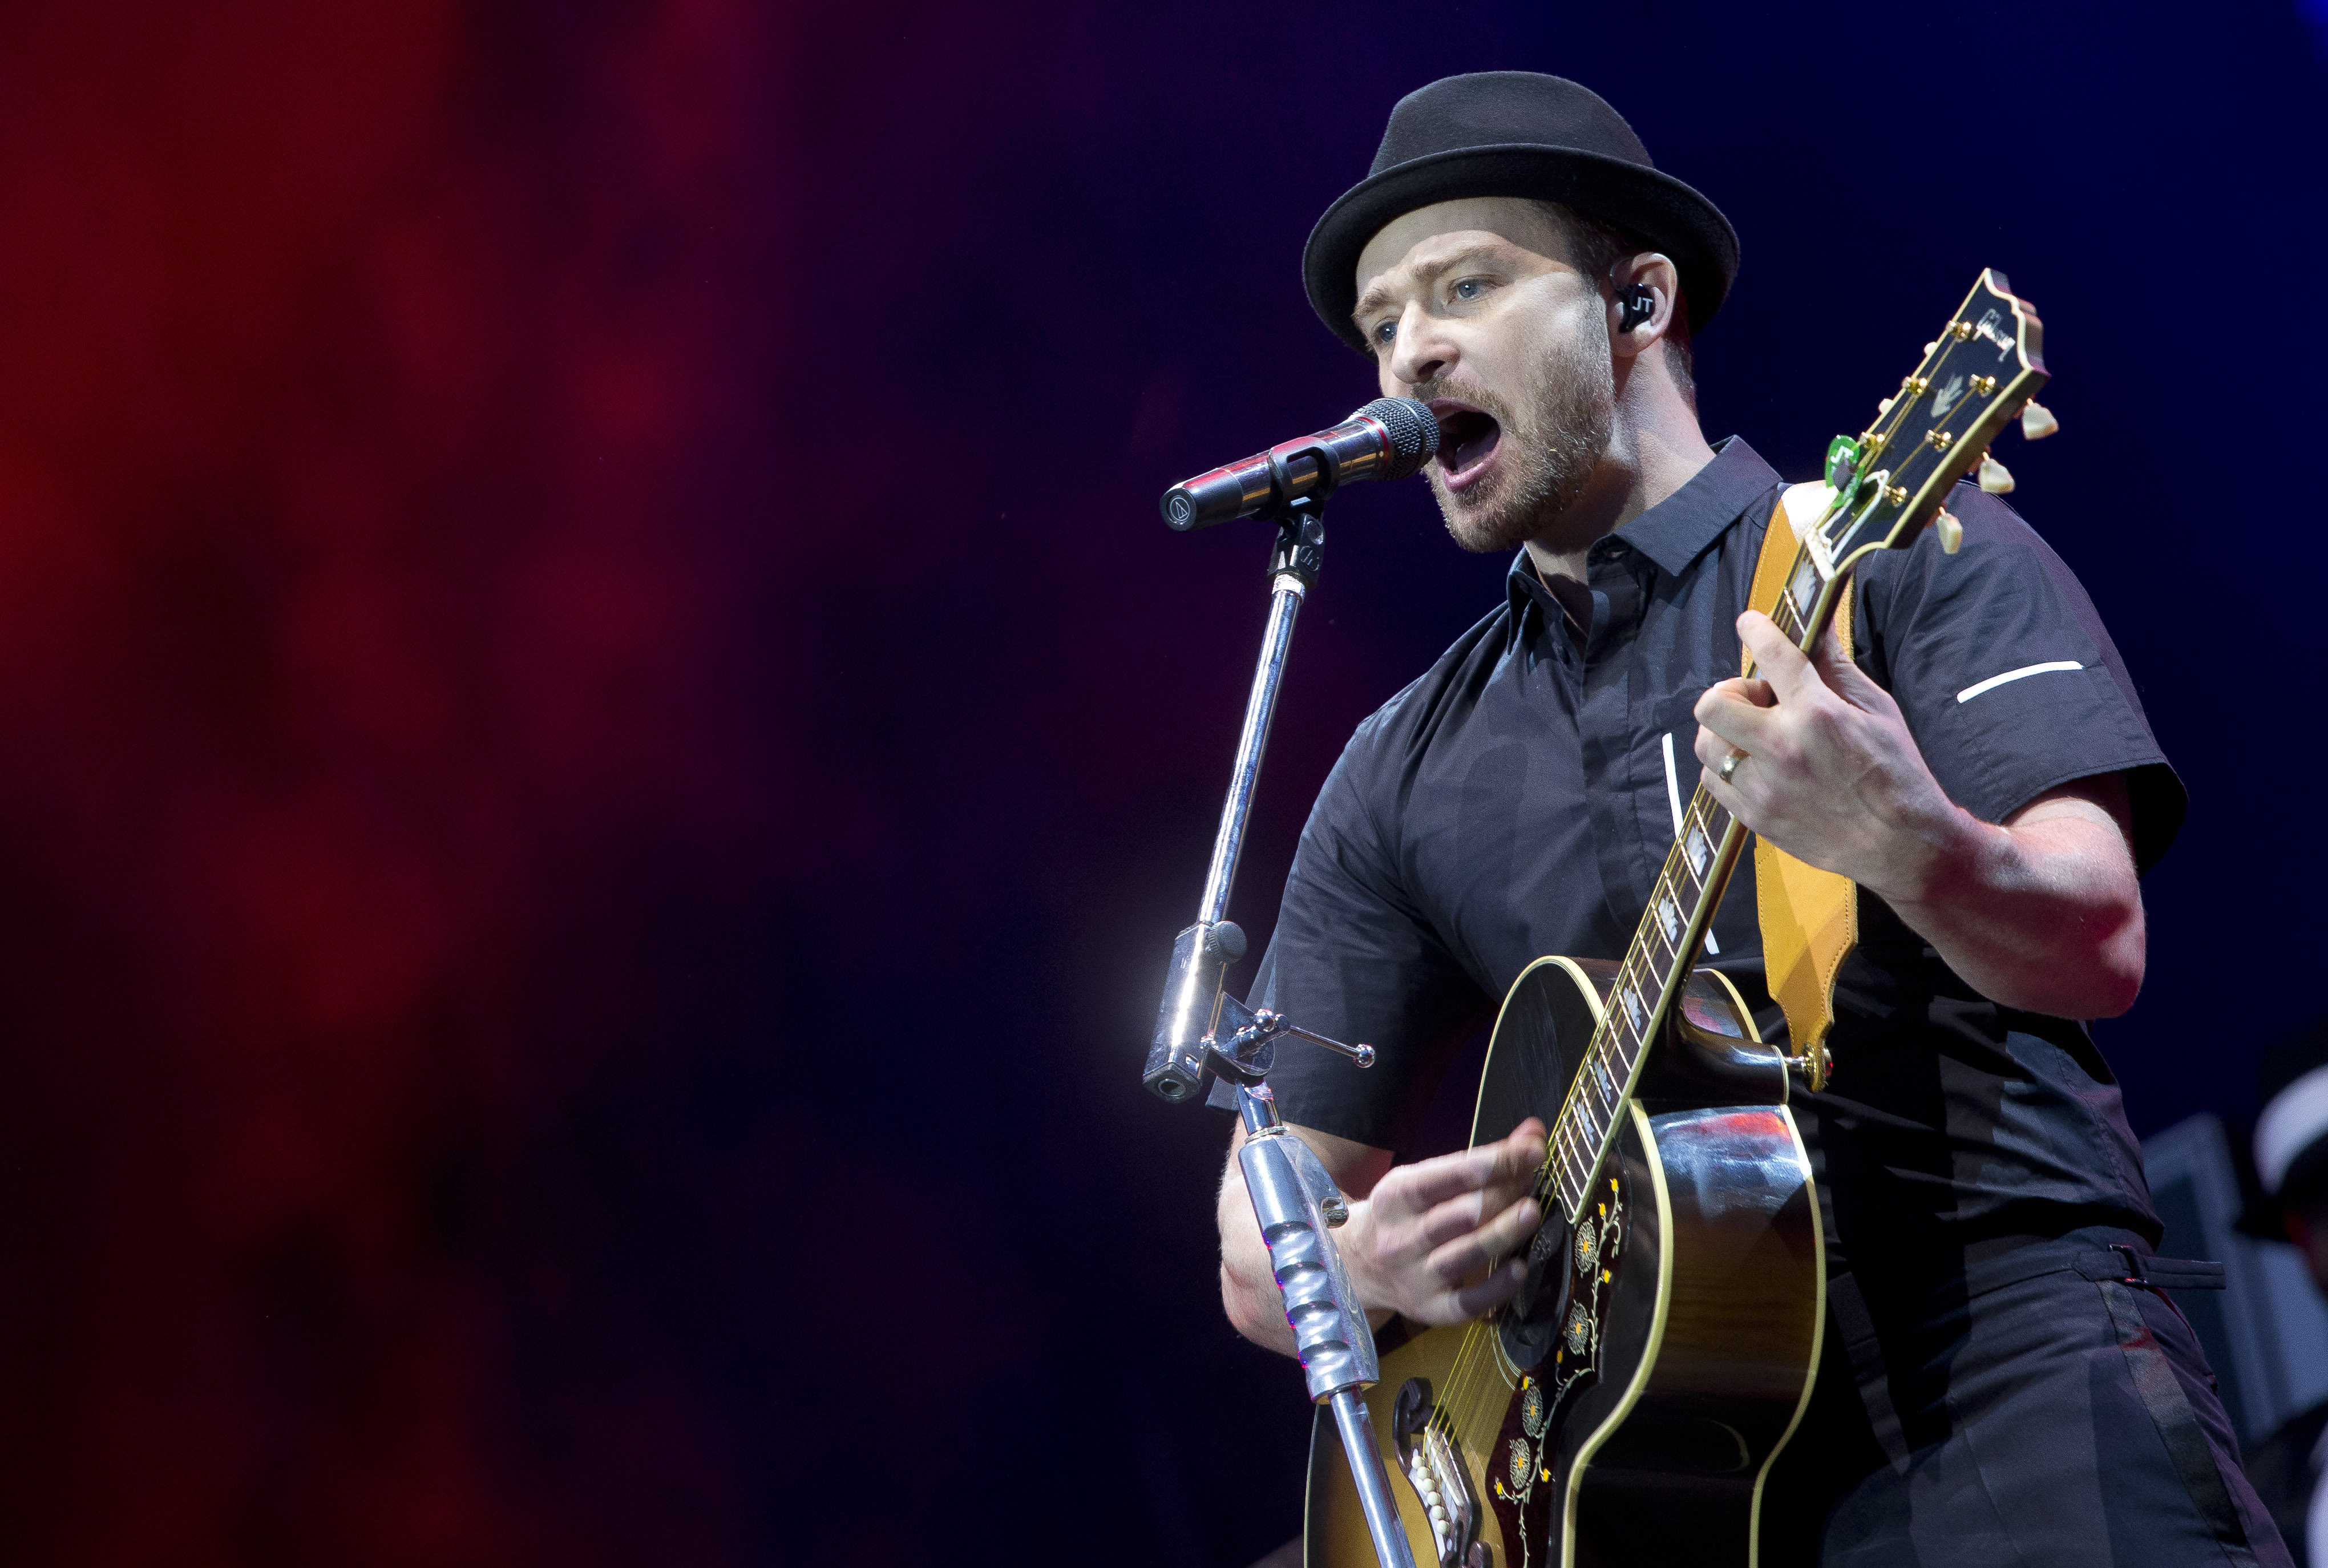 Justin Timberlake performs on stage during the Wireless Festival at the Queen Elizabeth Olympic Park, in East London, Friday, July 12, 2013. This year the festival moves from its usual home of Hyde Park to take place at London's Olympic Stadium. (Photo by Joel Ryan/Invision/AP)